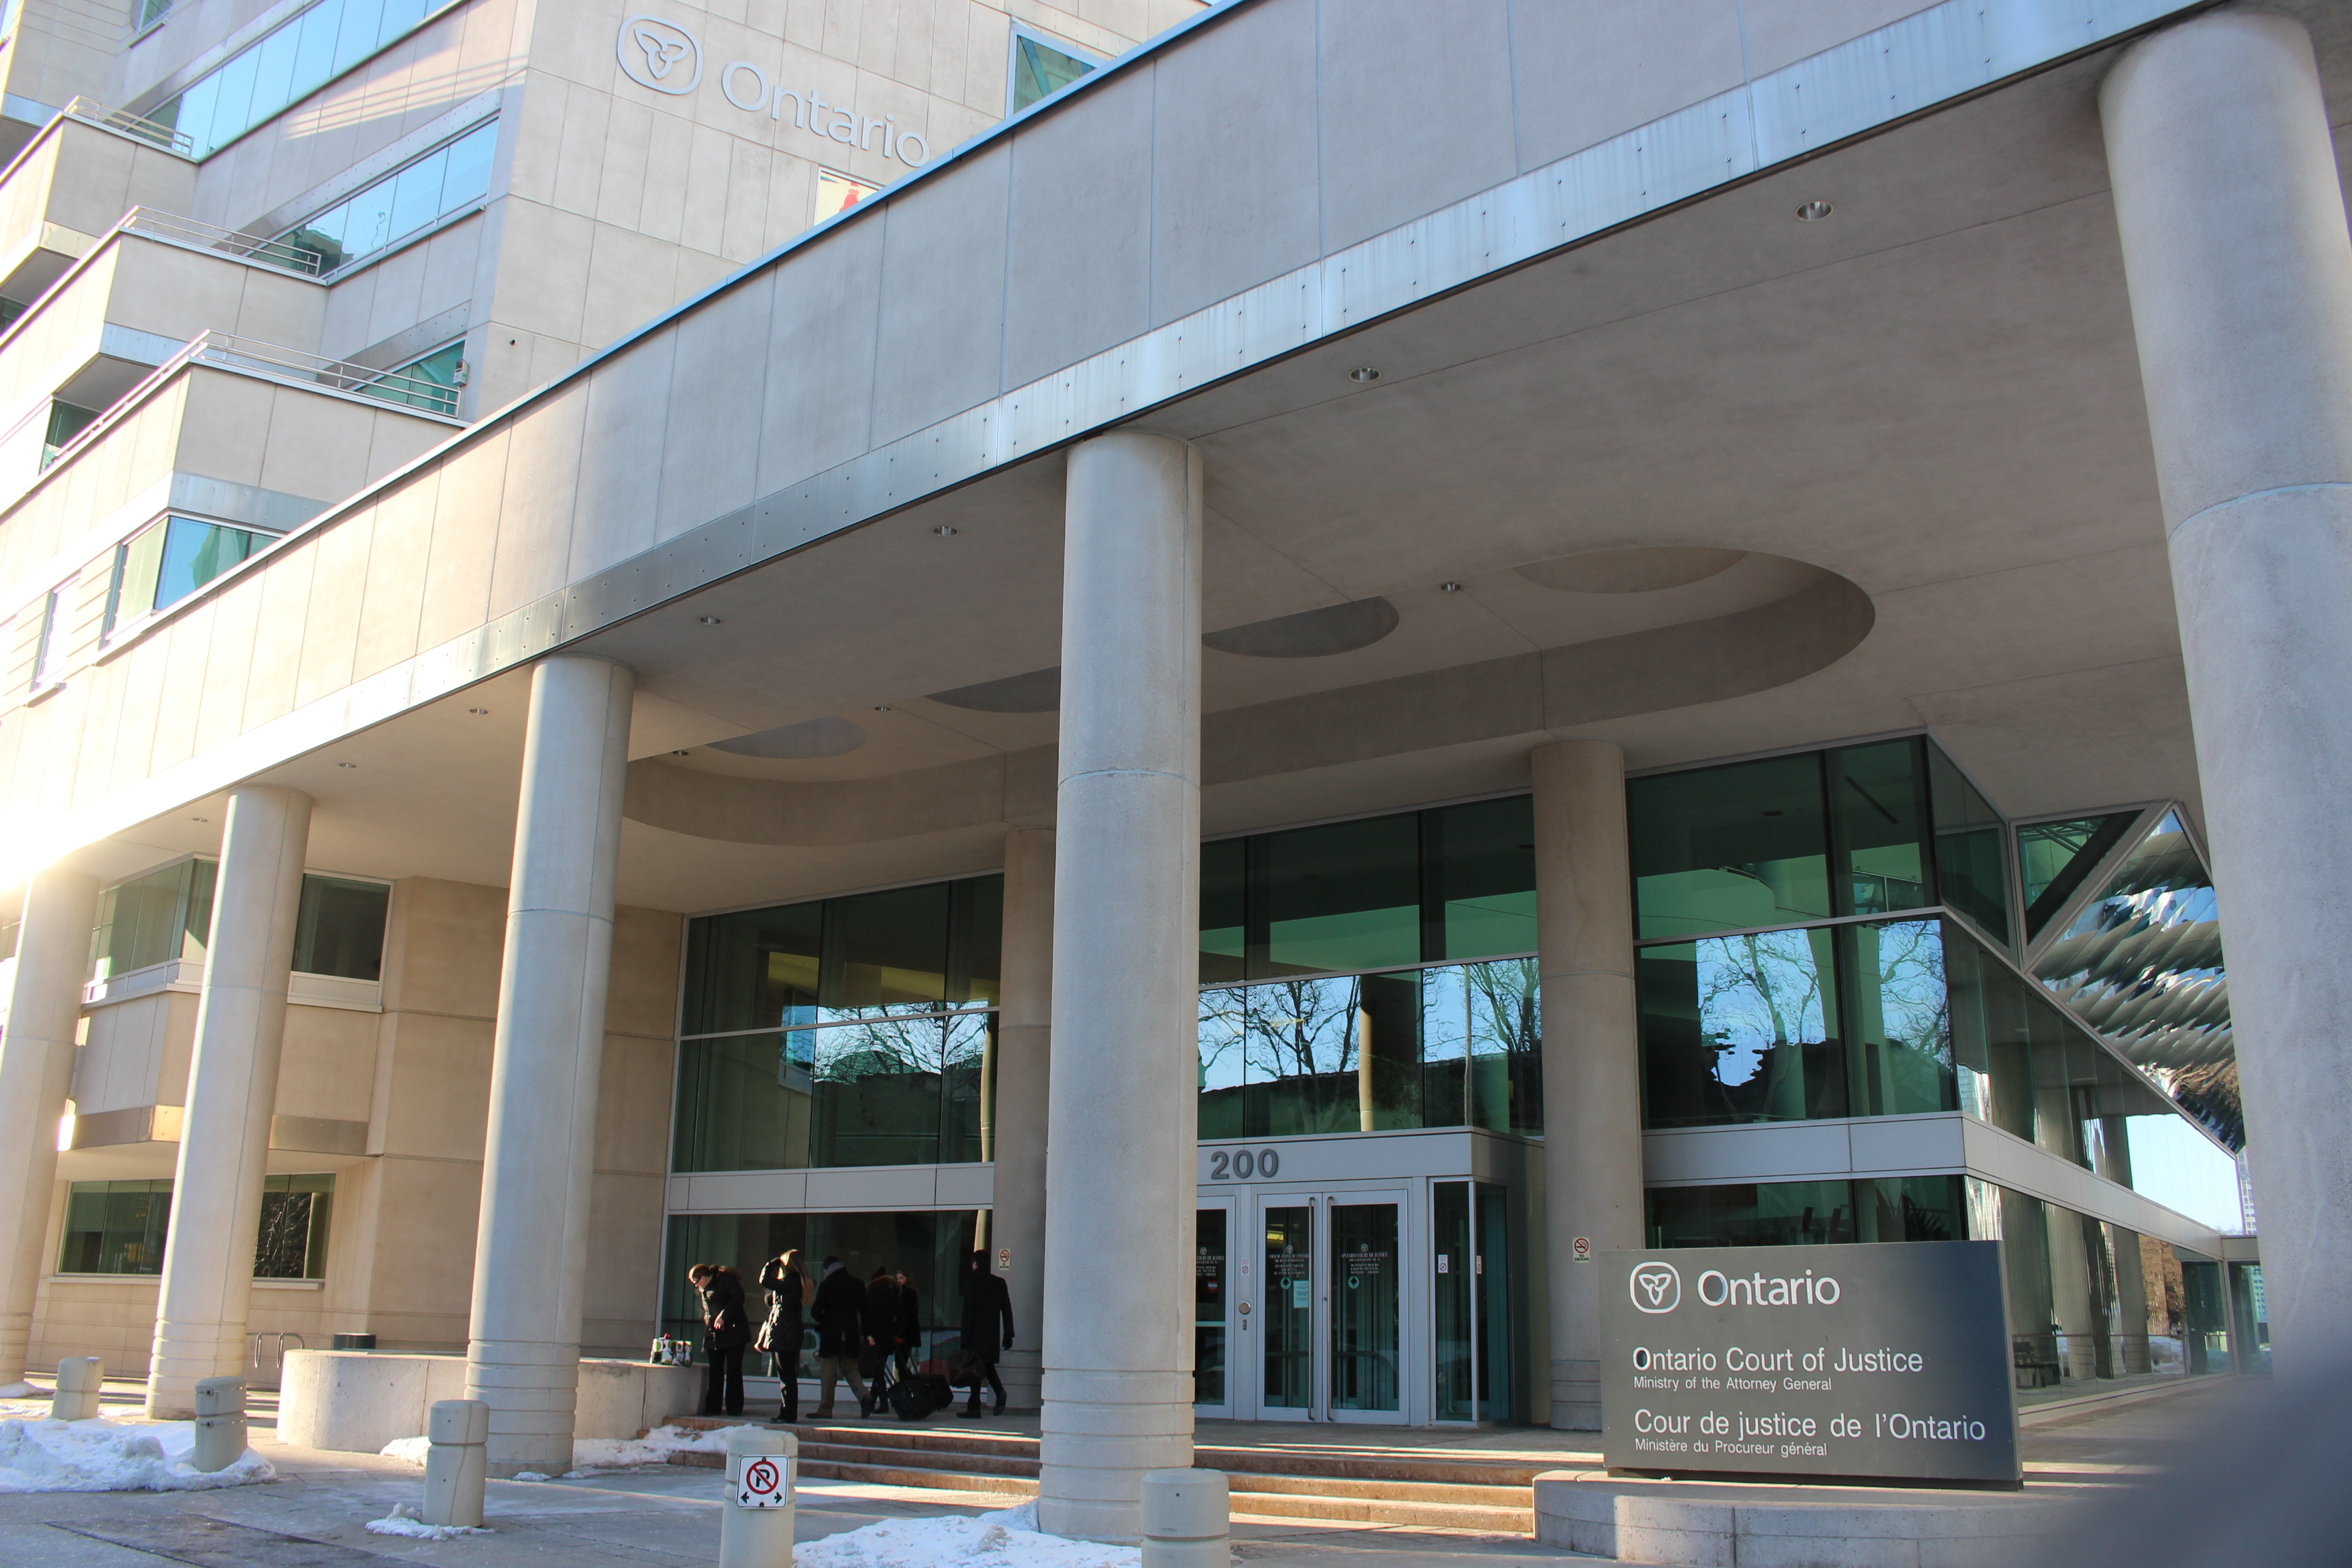 BlackburnNews.com file photo of the Ontario Court of Justice. (Photo by Jason Viau)